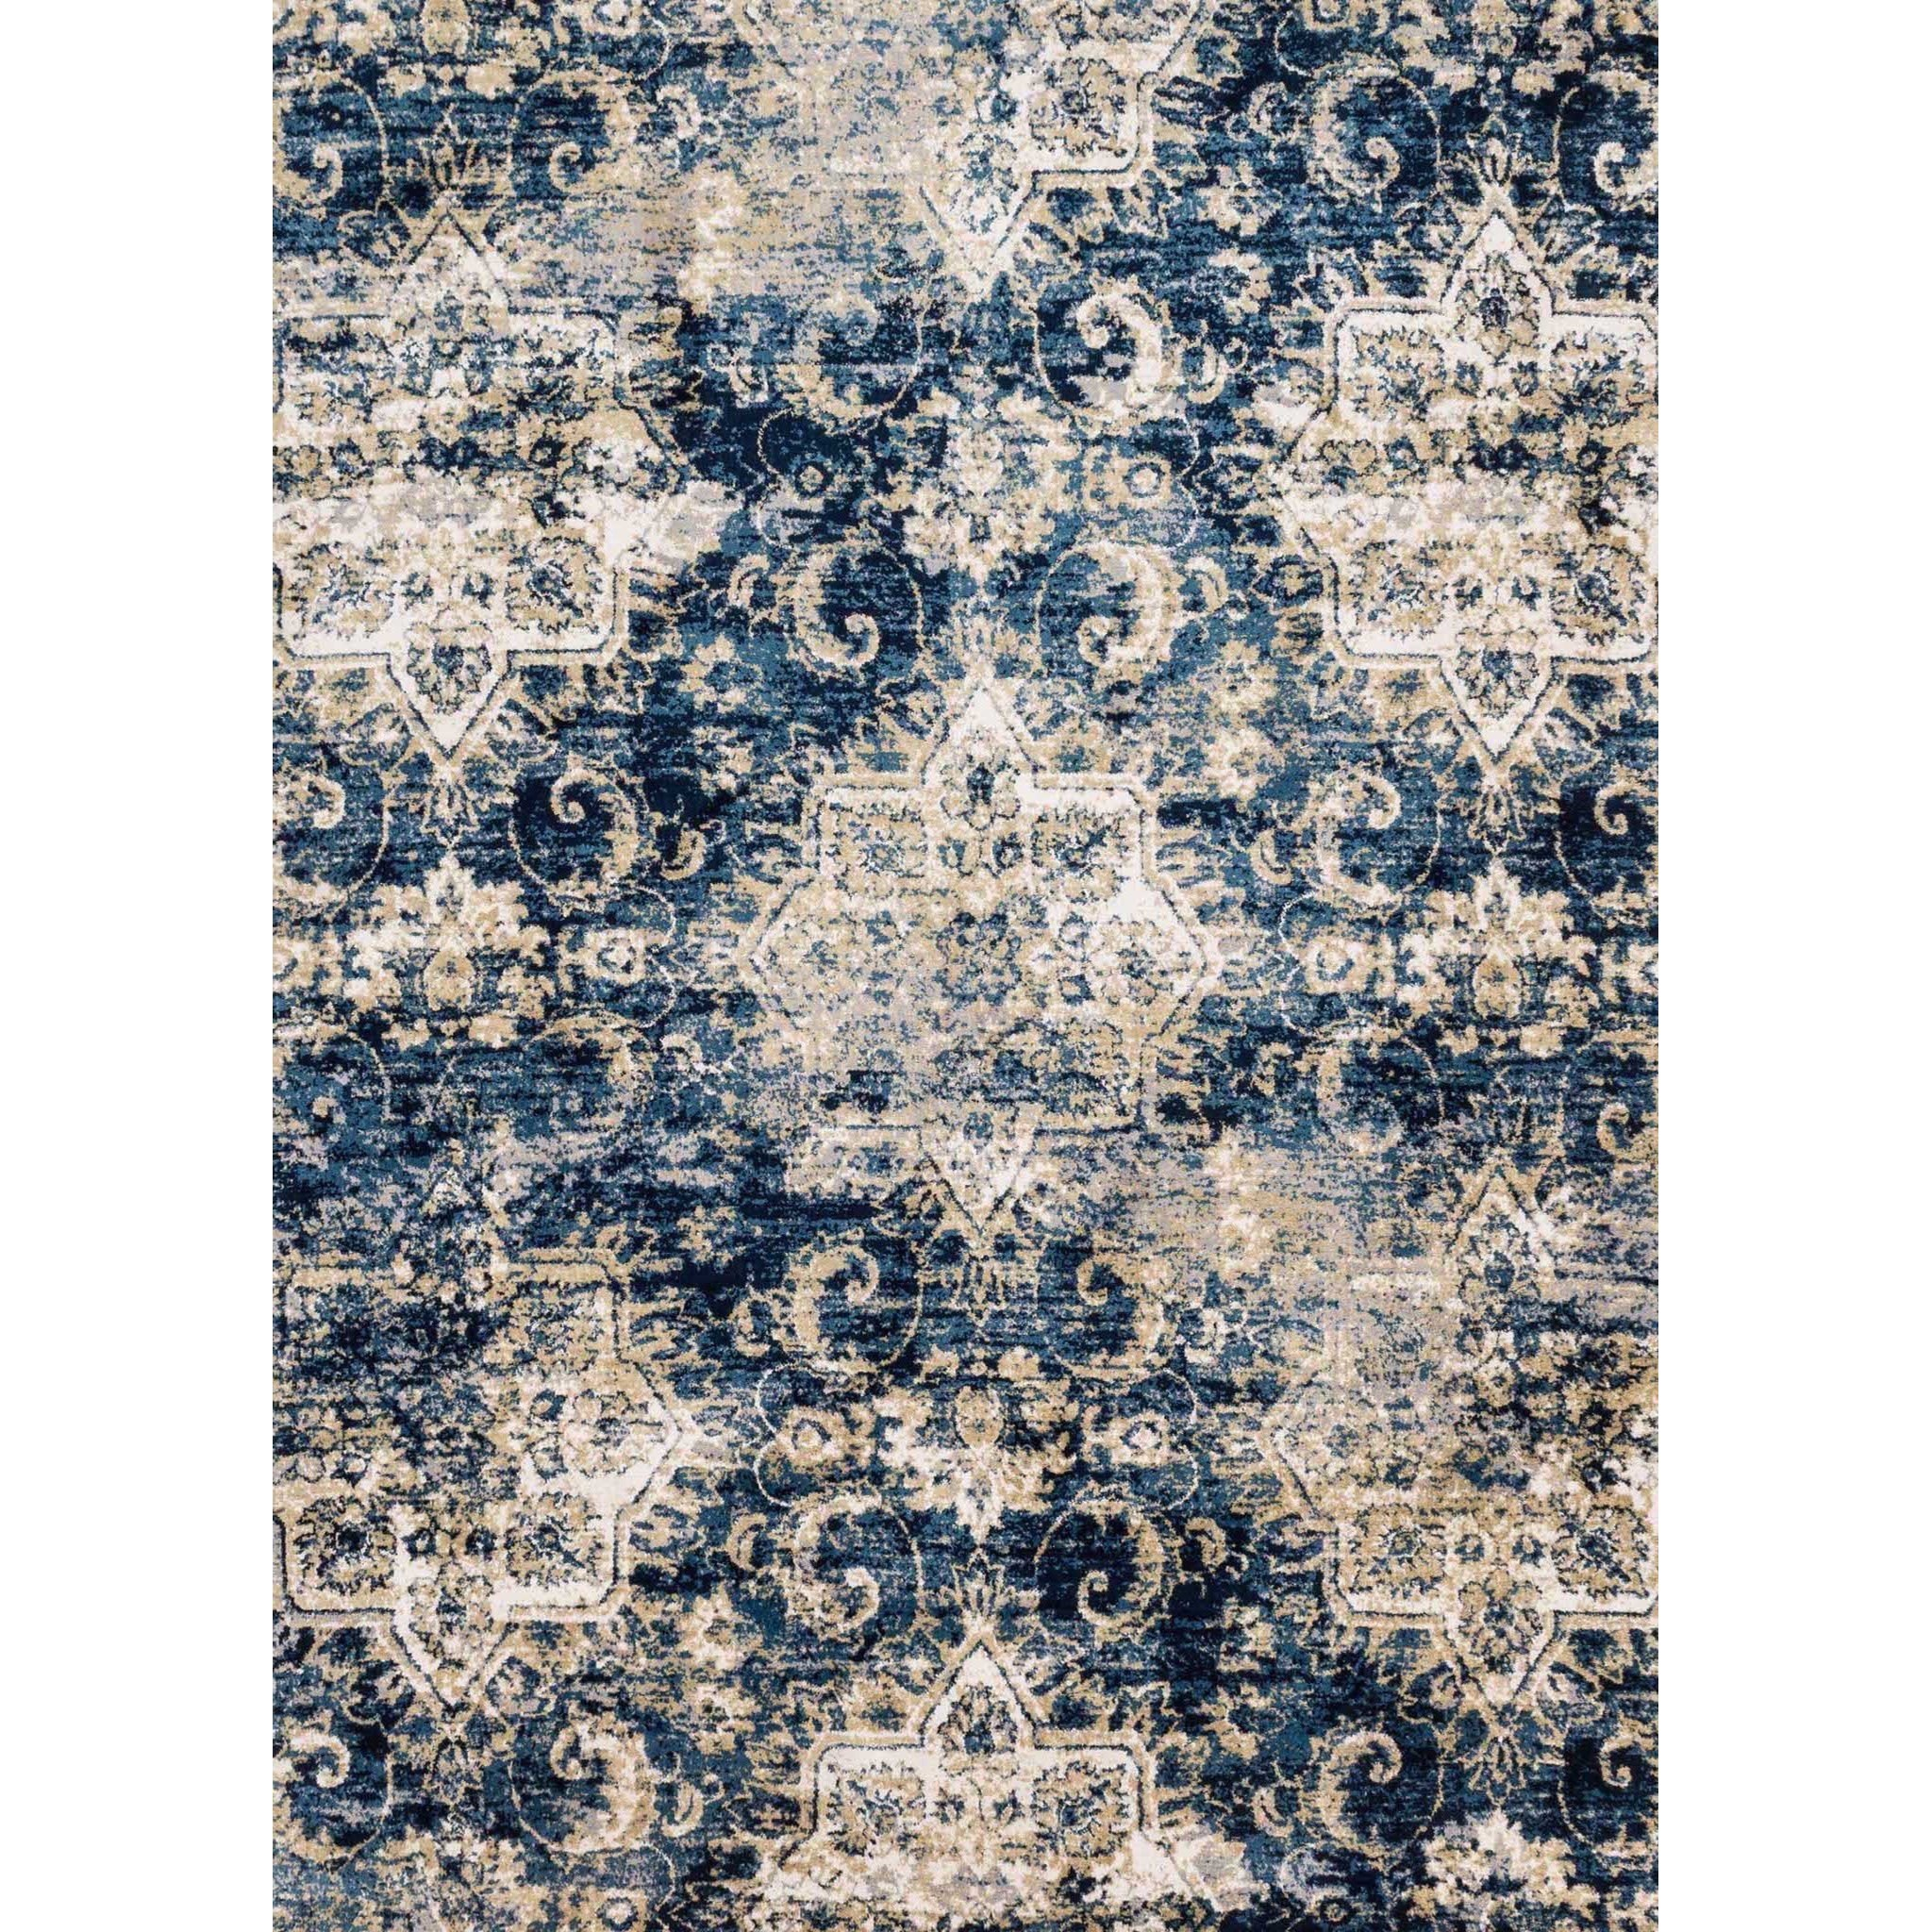 "Torrance 9'-3"" X 13' Rug by Loloi Rugs at Pedigo Furniture"